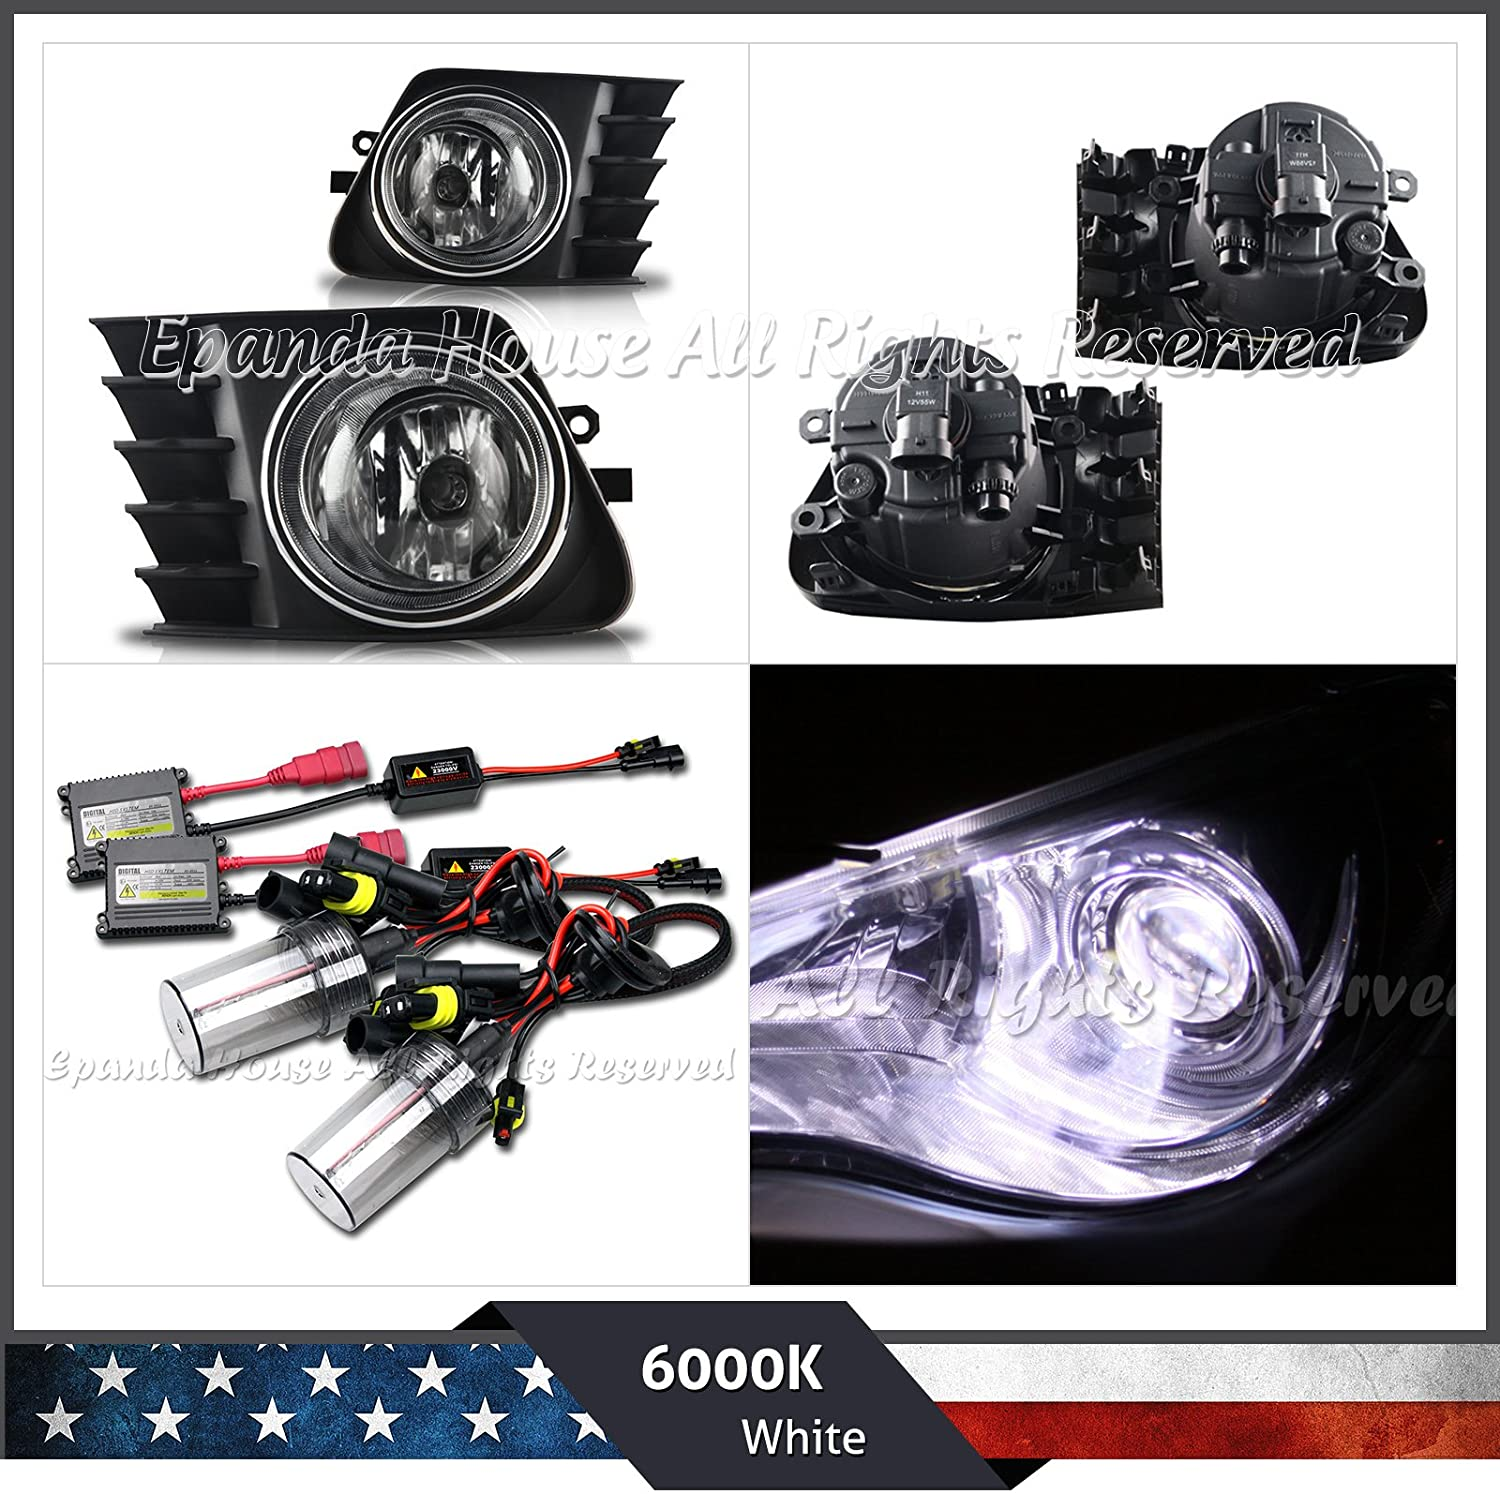 EpandaHouse Fog Lights Assemblies Made for 11-14 Toyota Prius V Clear Lens Assemblies+6000K White Ac HID Kit